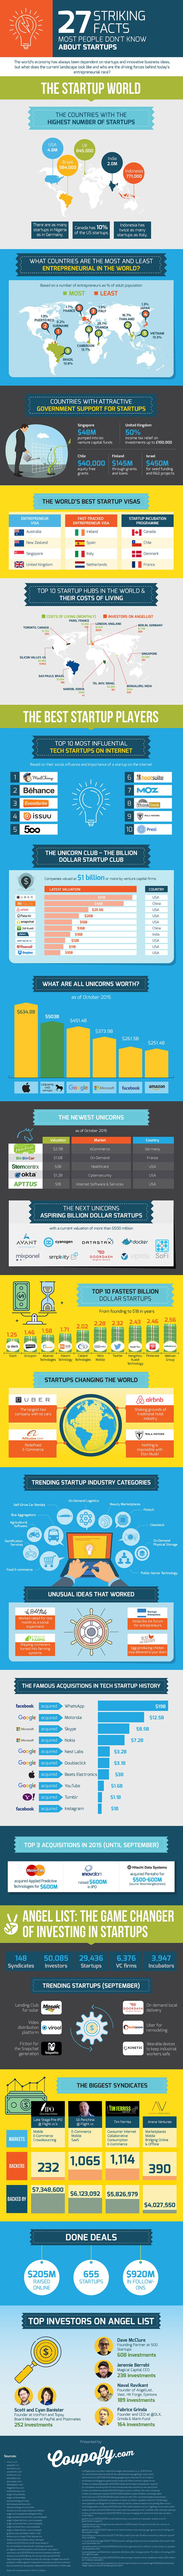 27 facts about startups - infographic by Coupofy.com